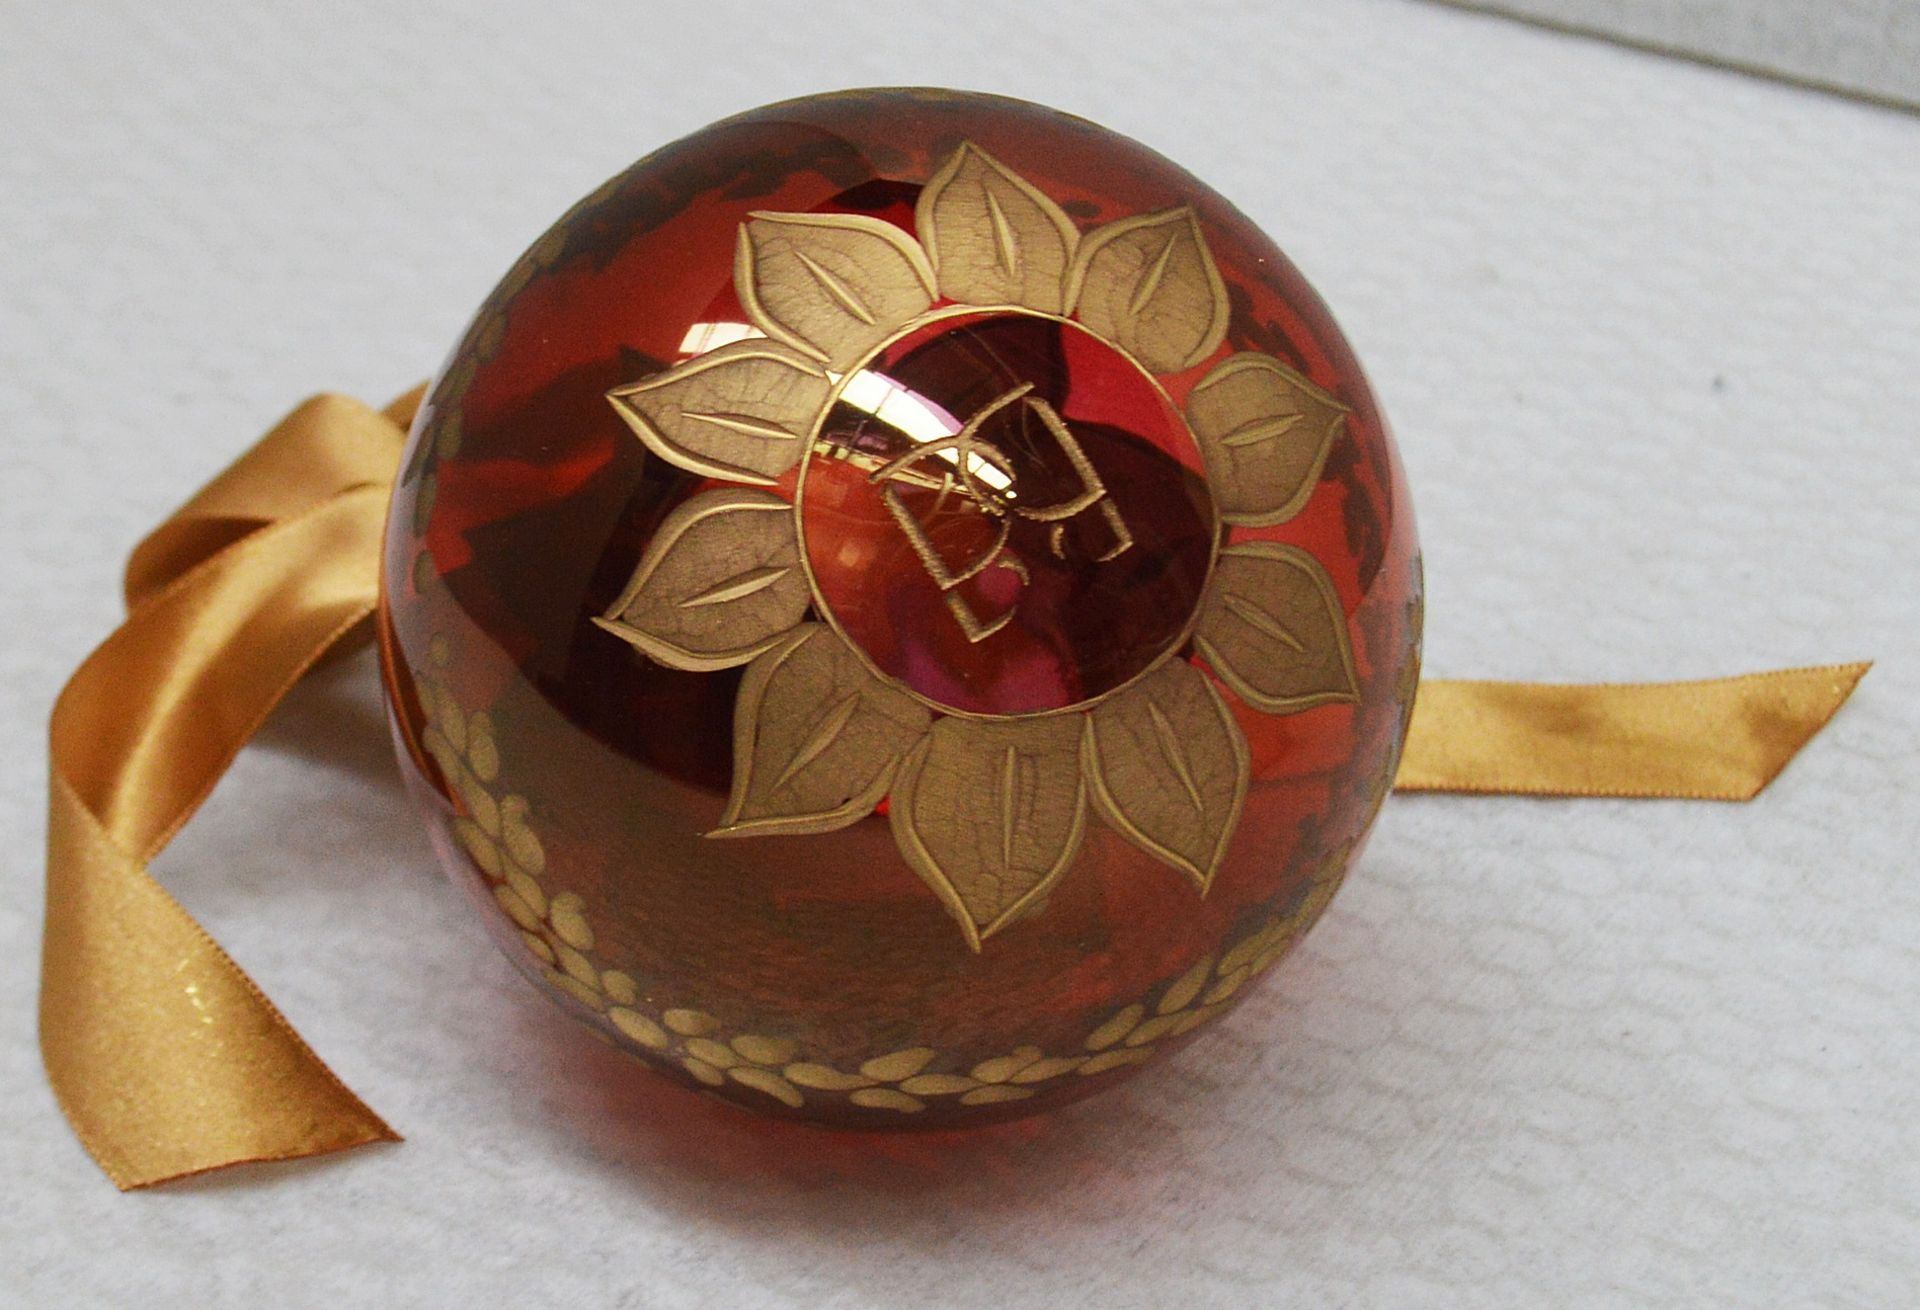 1 x BALDI 'Home Jewels' Italian Hand-crafted Artisan Christmas Tree Decoration In Red And Gold - - Image 4 of 5